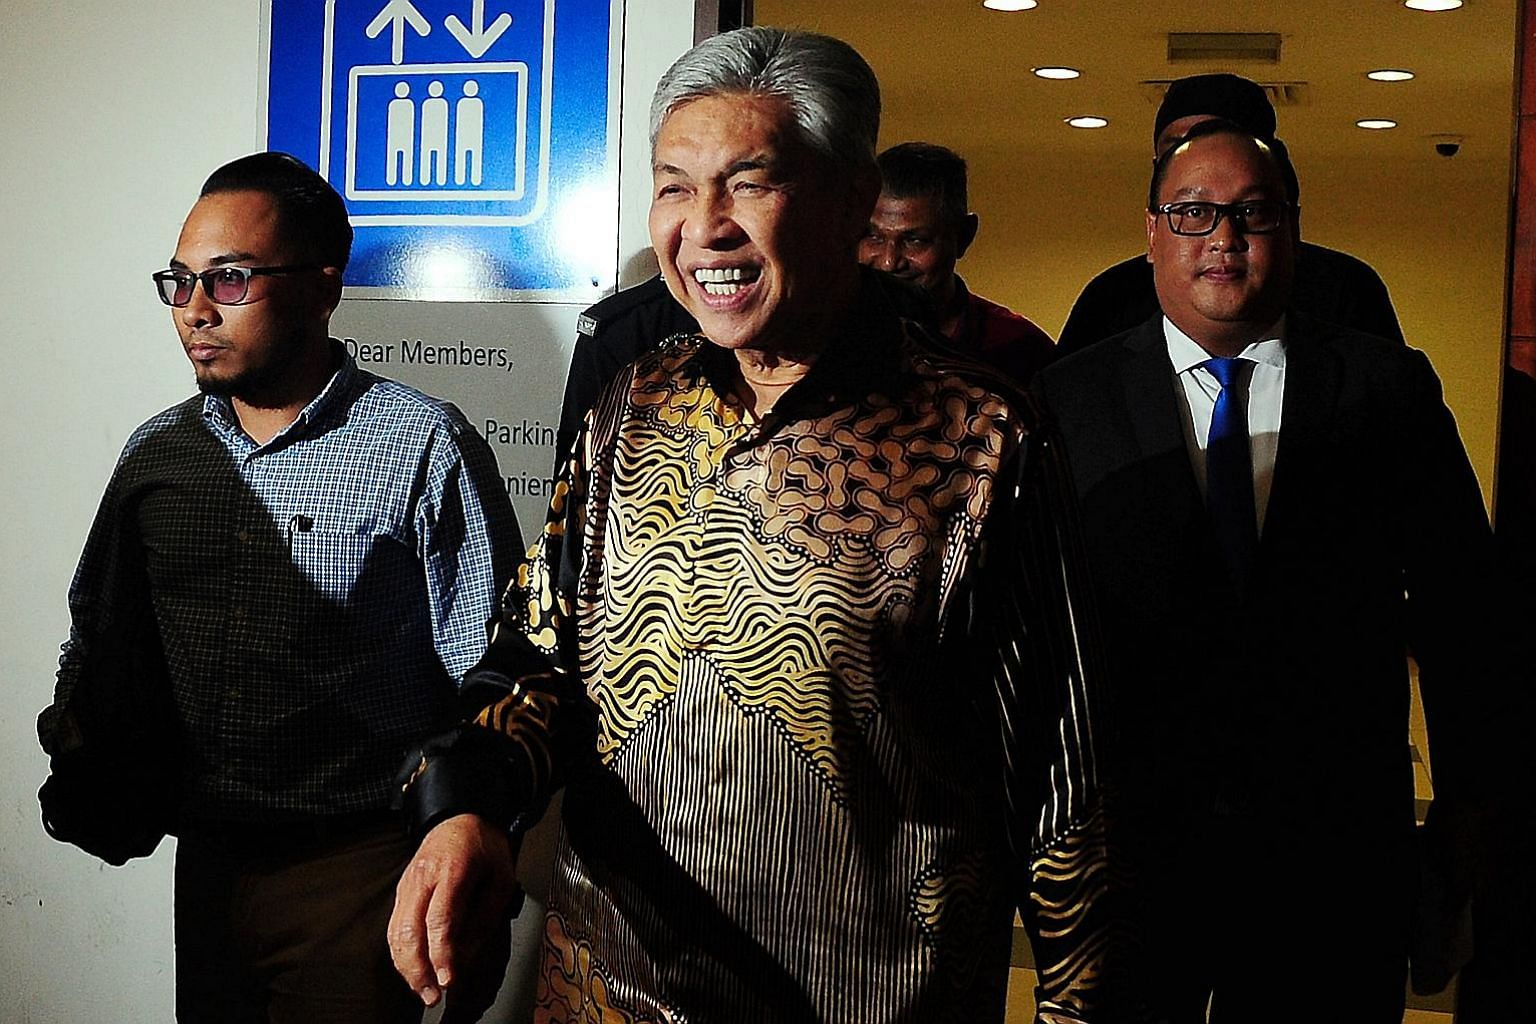 The comeback of Umno president Ahmad Zahid Hamidi (centre) could stir PM Mahathir Mohamad into action, as Mr Zahid pursues a swift return to power by making Umno an ally to his former mentor, Datuk Seri Anwar Ibrahim.